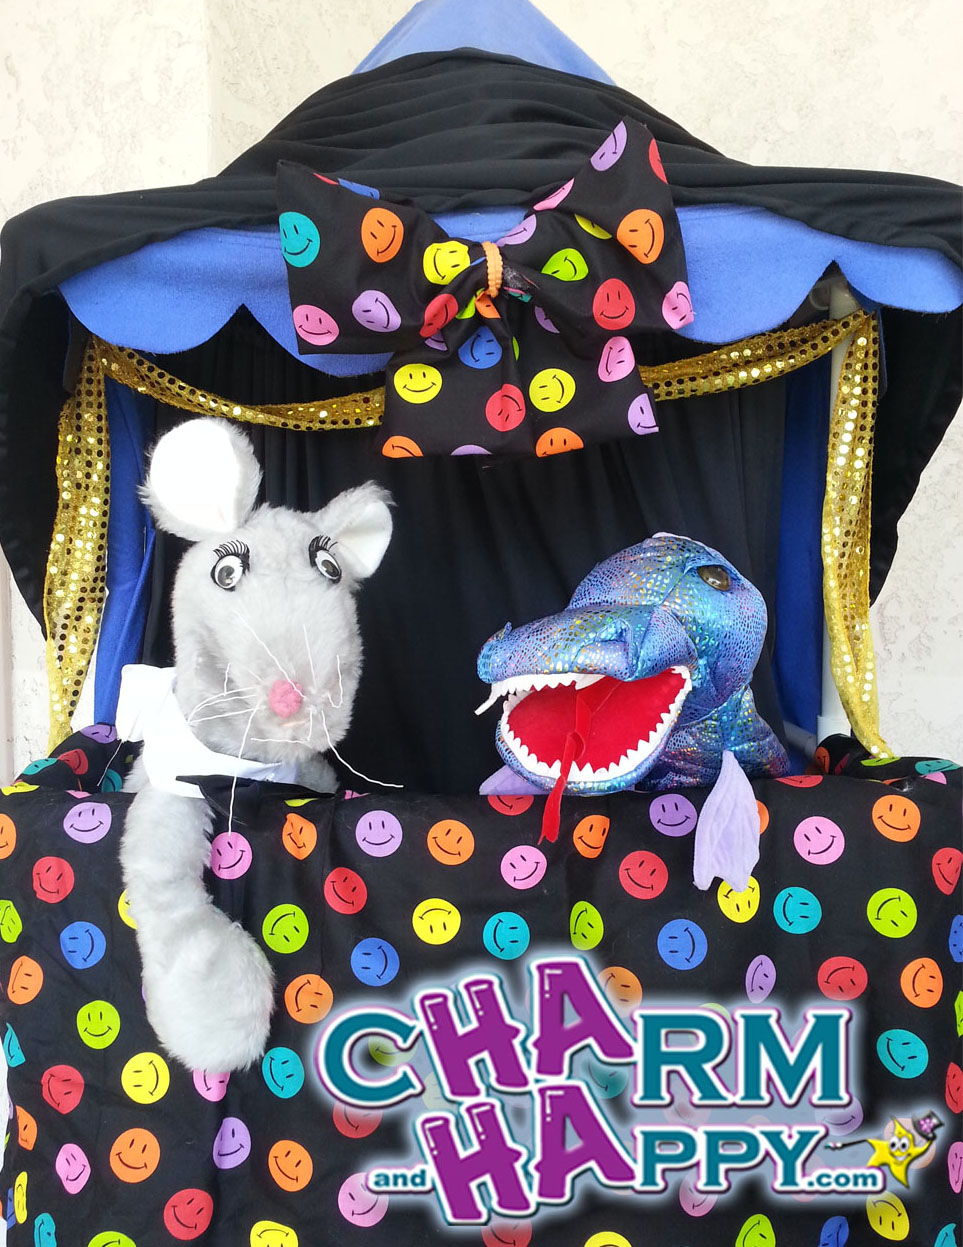 puppet show birthday party hemet whittier orange county oc